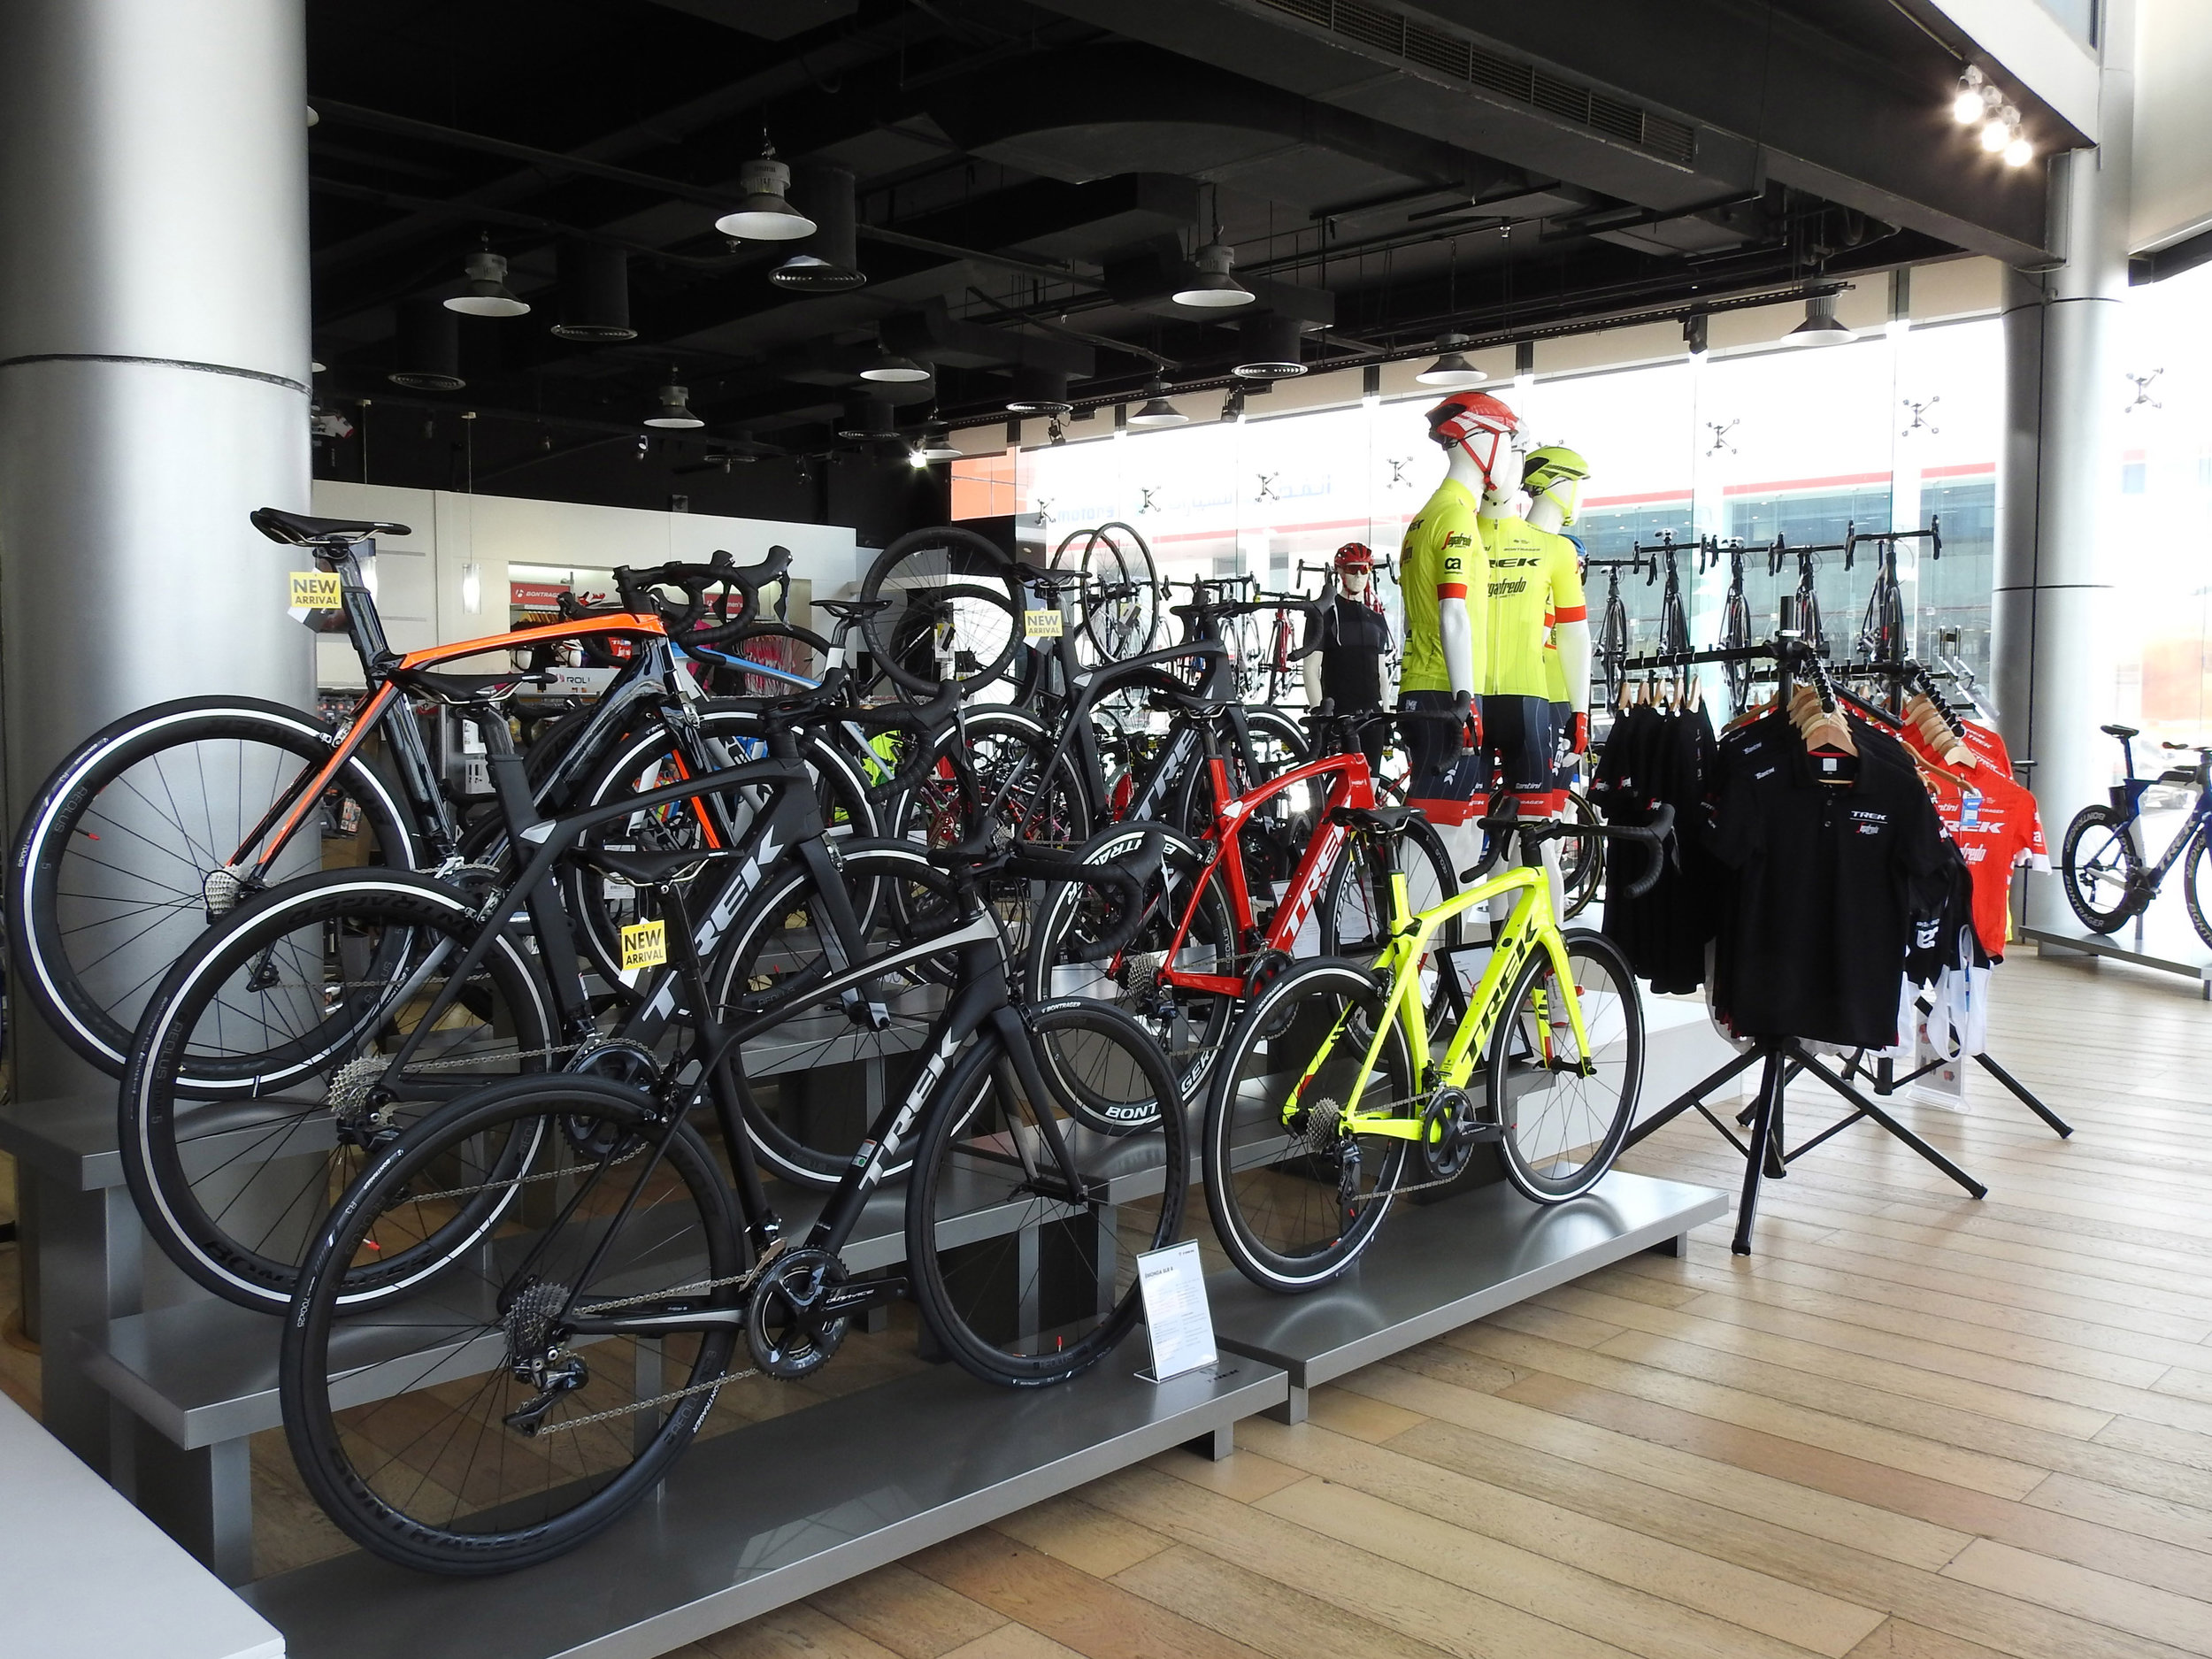 RETAIL    Trek Bicycle Store Sheikh Zayed Road store is a fully equipped bicycle store including Sales, Service, Precision Fit Studio and more quality brands.  SHEIKH ZAYED ROAD, AL QUDRA CYCLING TRACK, ALKON